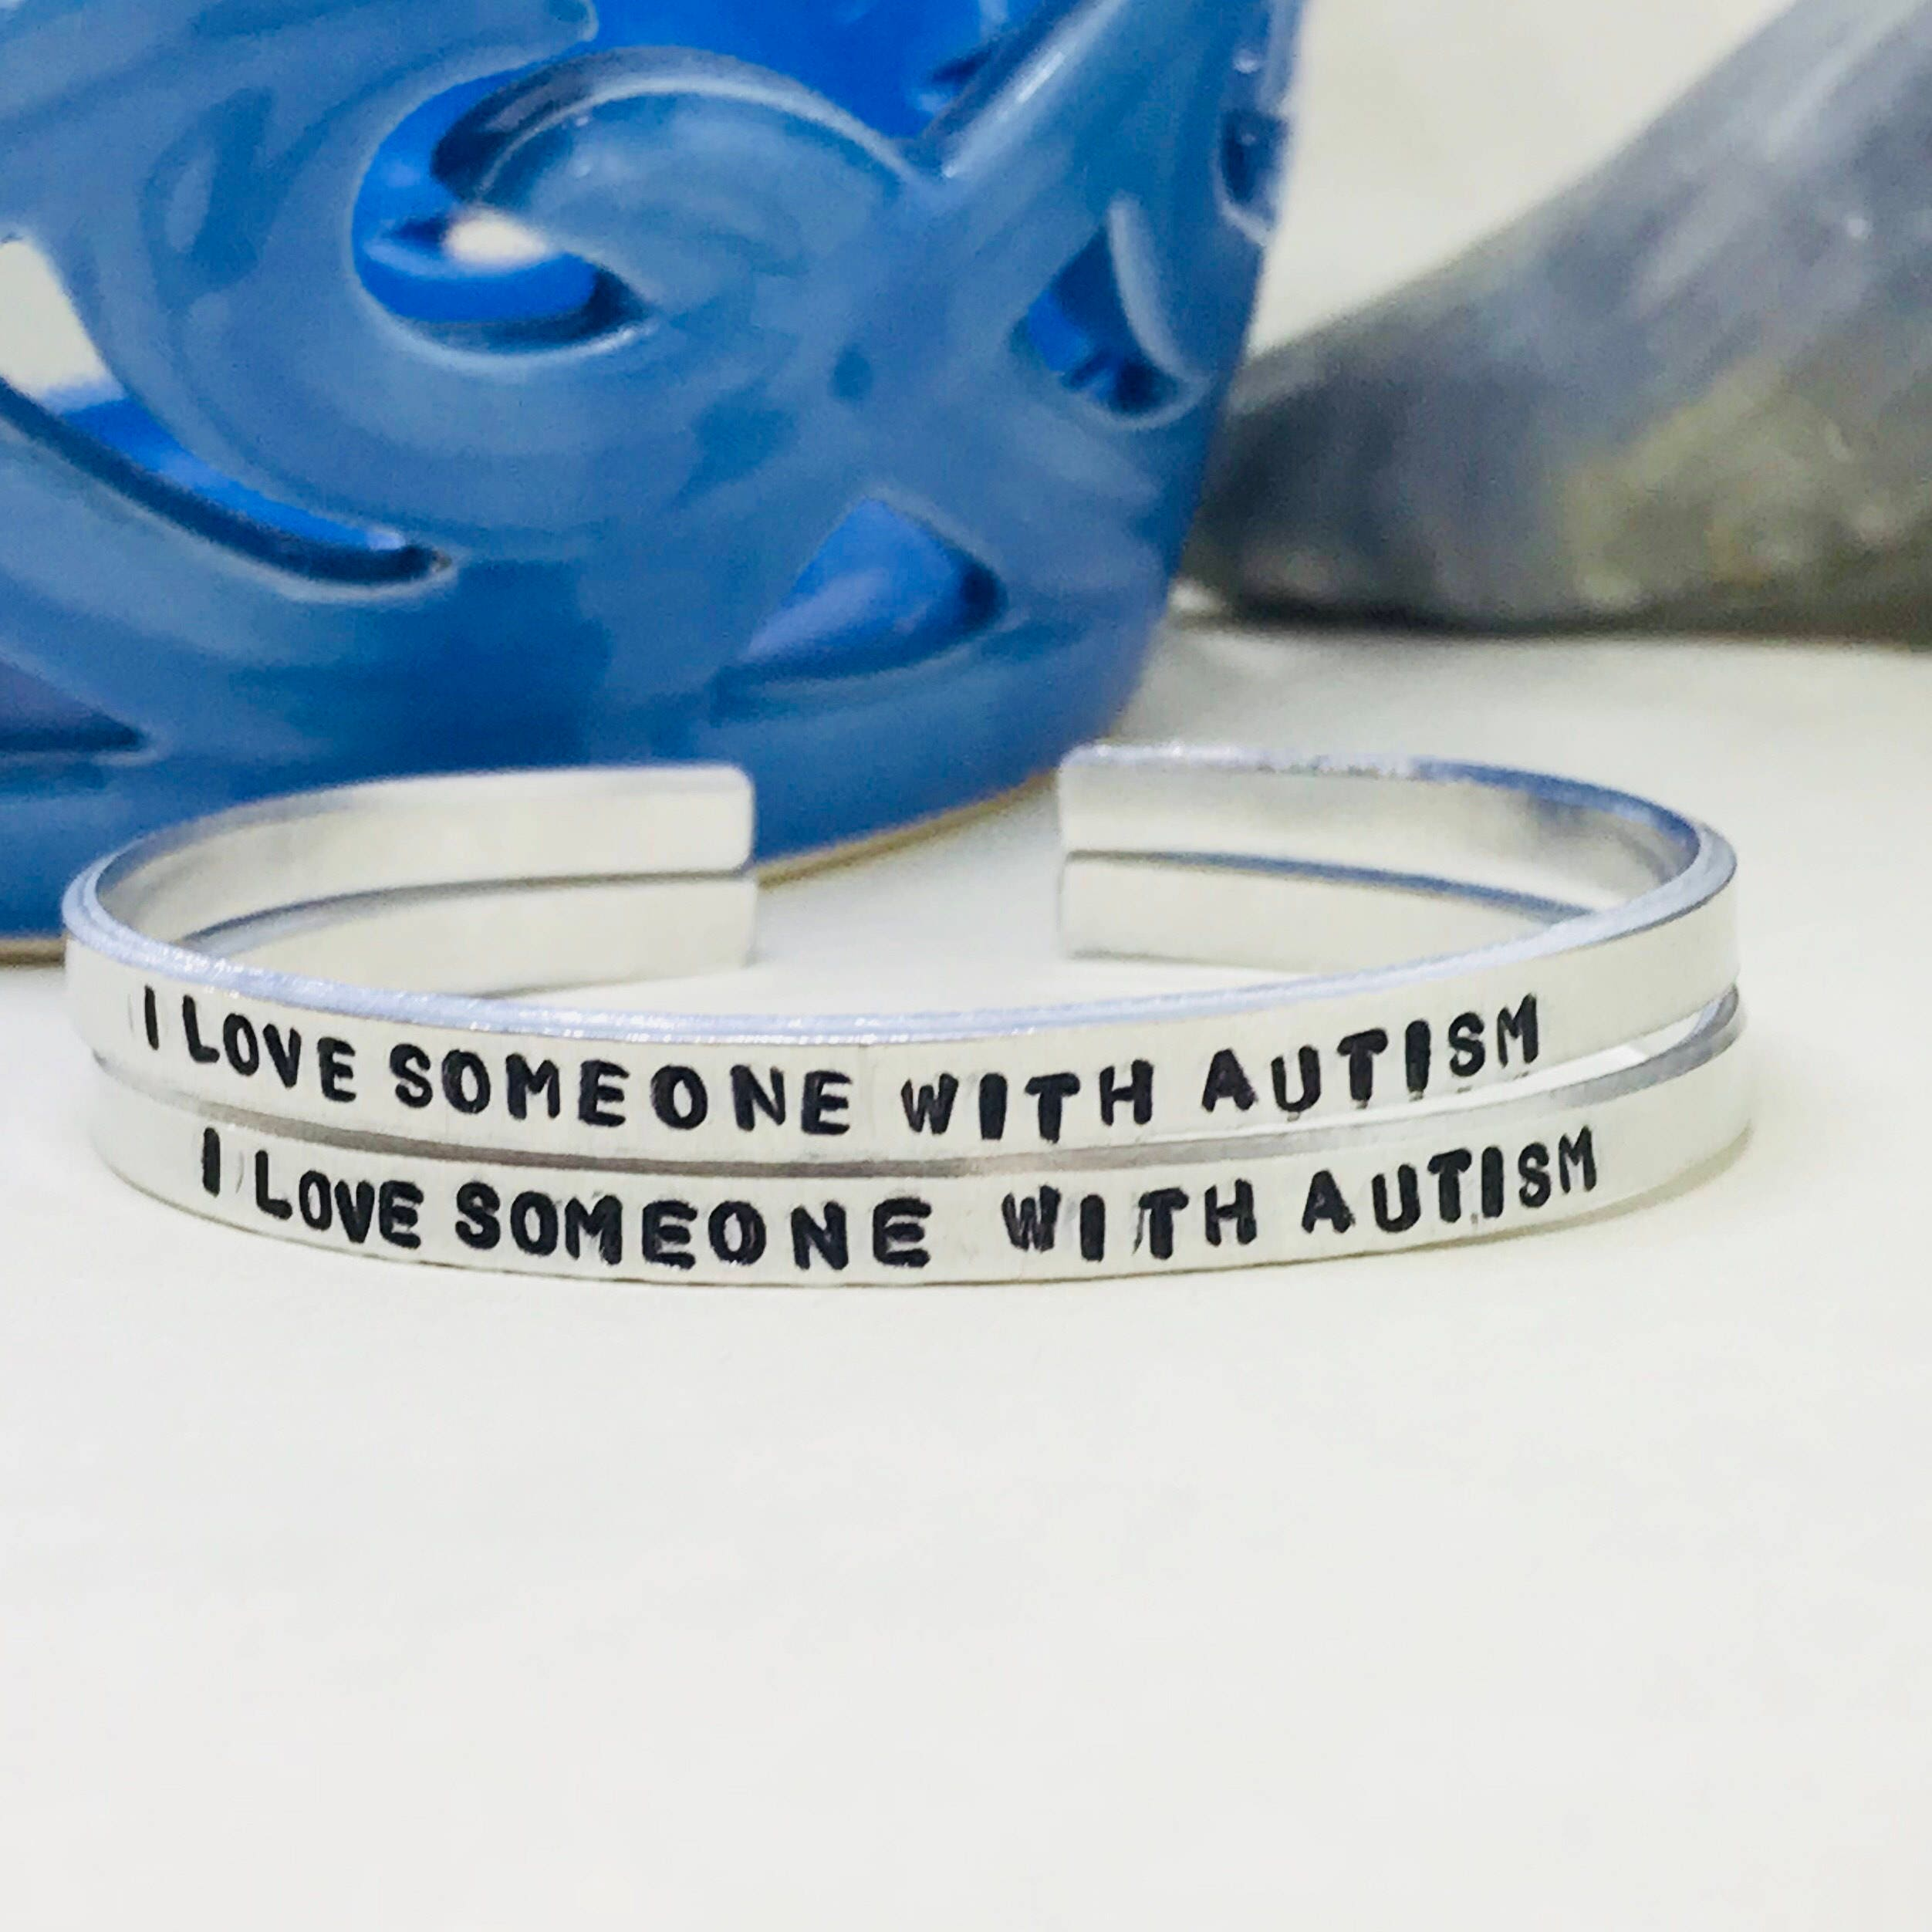 blue bracelet lego bricks autism dsc product uk